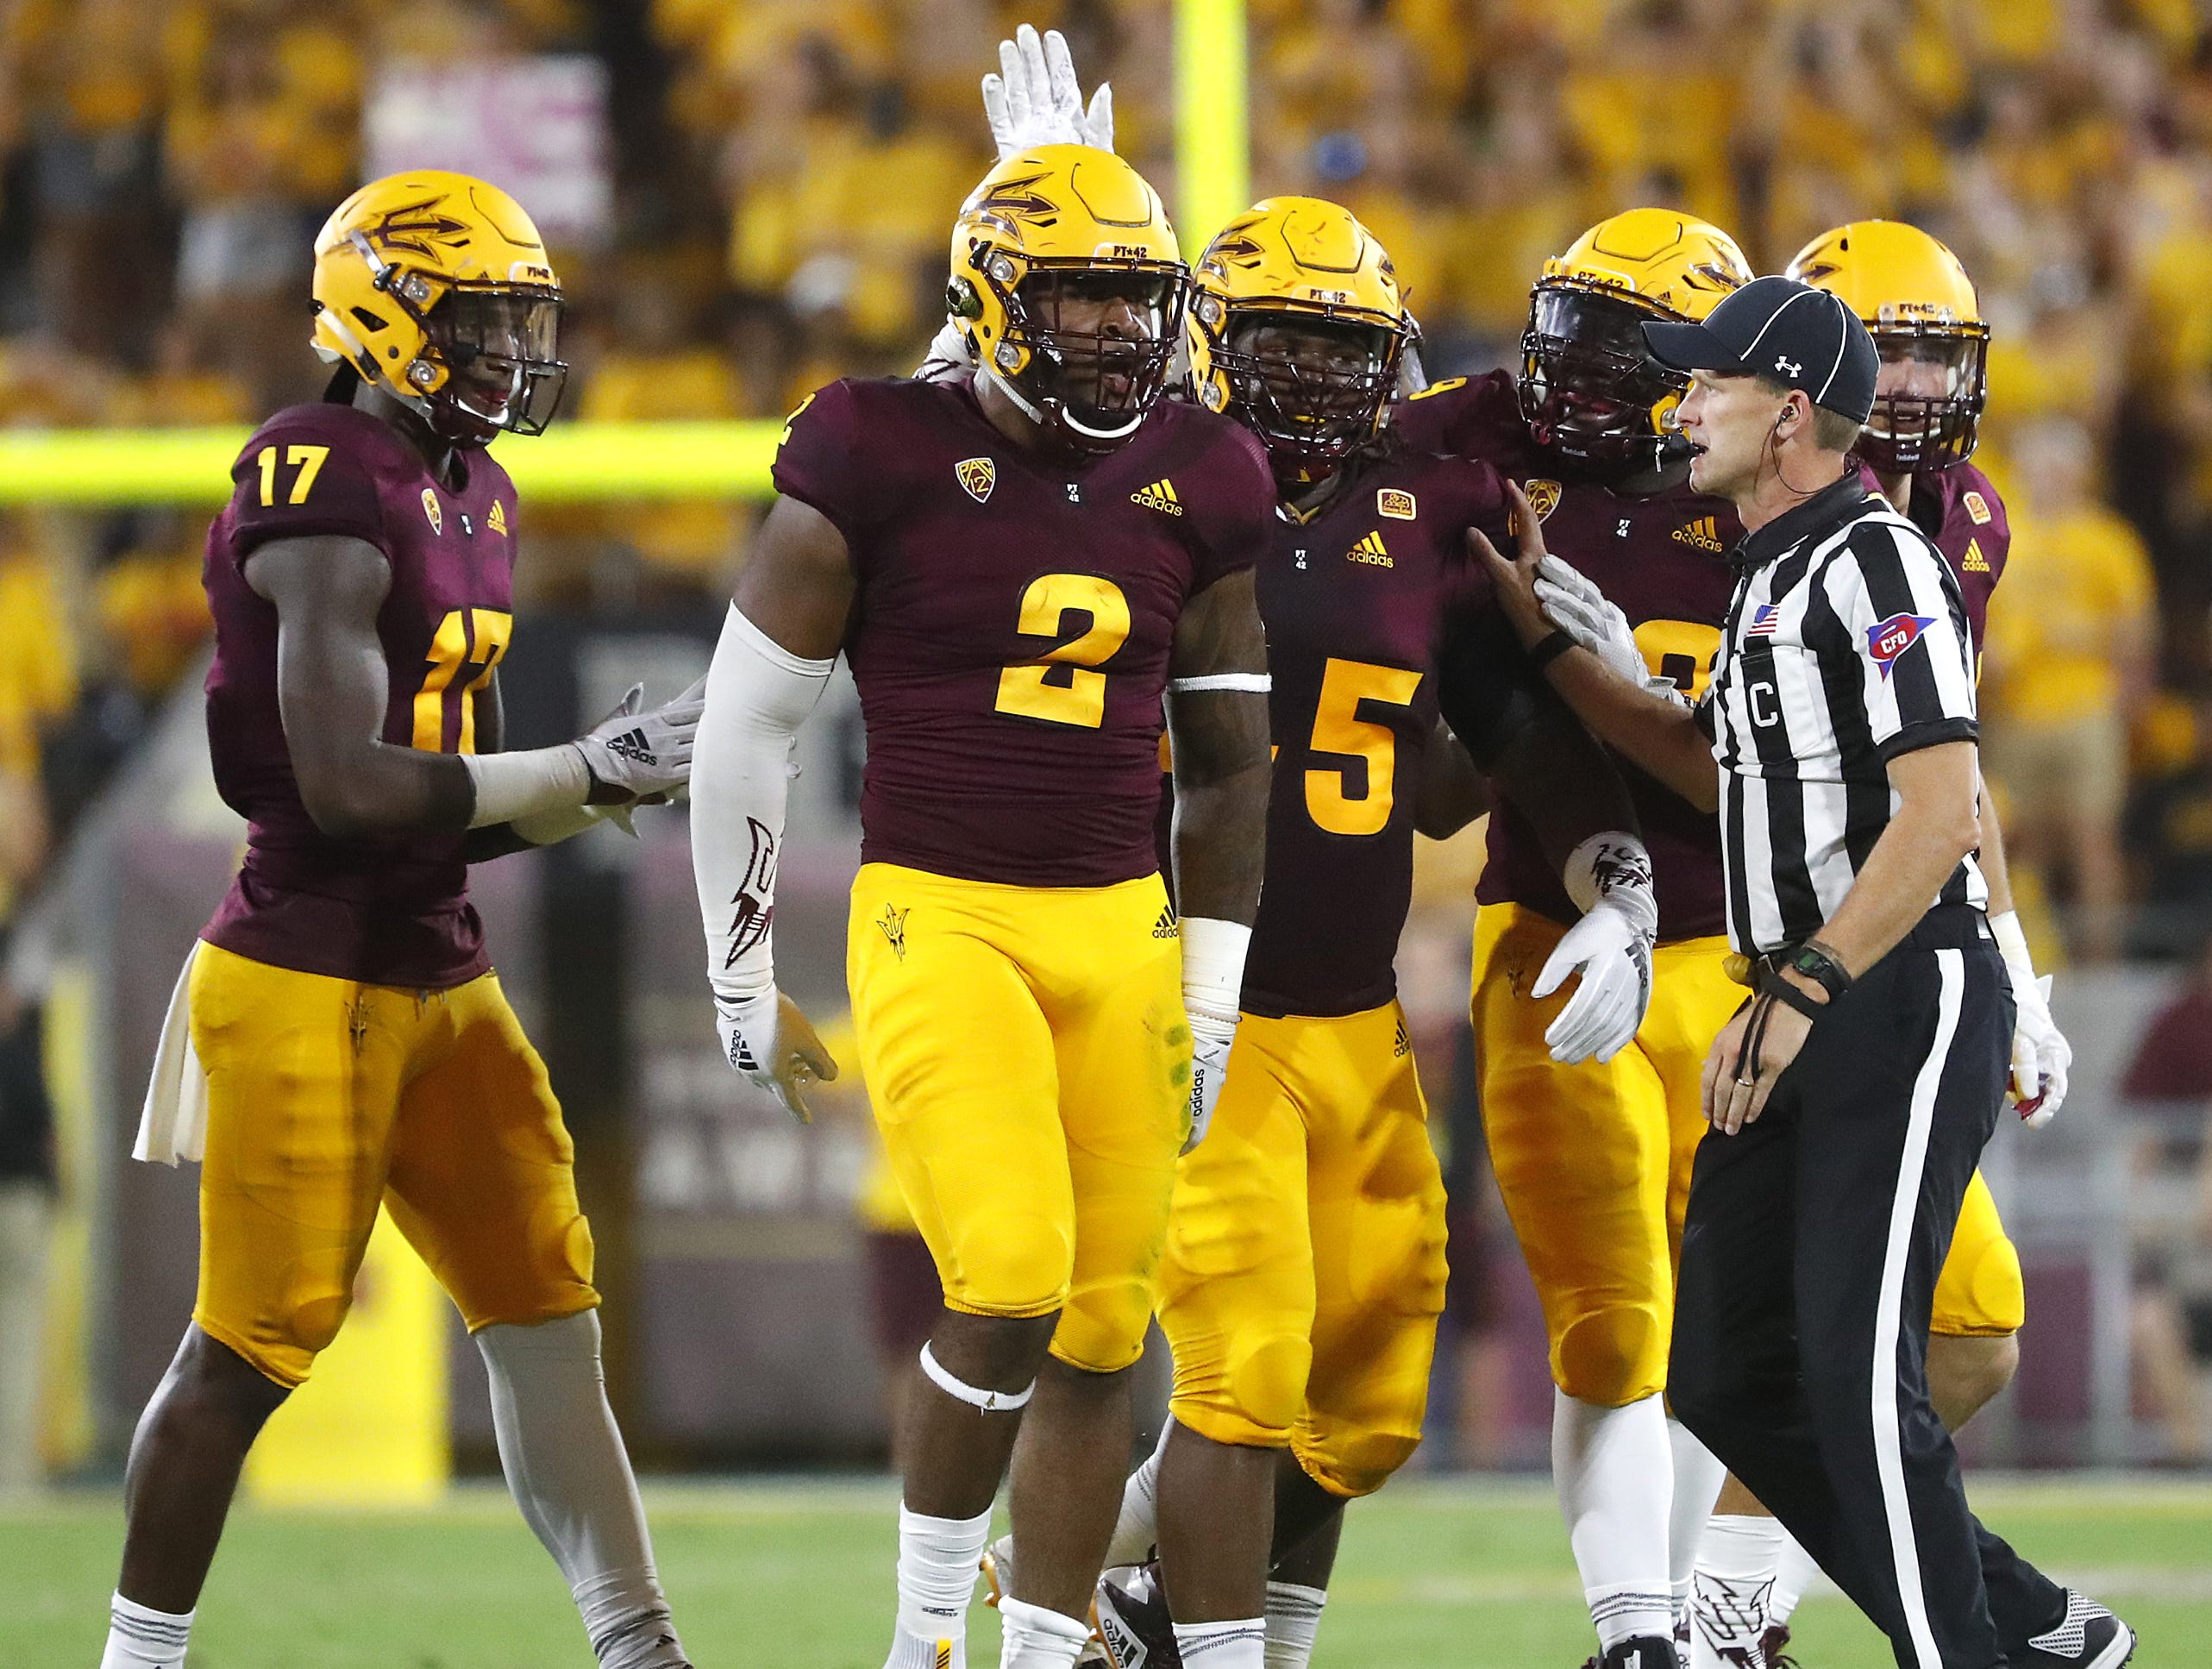 Arizona State Sun Devils teammates congratulate Arizona State Sun Devils defensive lineman Darius Slade (2) after he recovered a fumble during the first half against UTSA Roadrunners at Sun Devil Stadium in Tempe, Ariz. on Sept. 1, 2018.